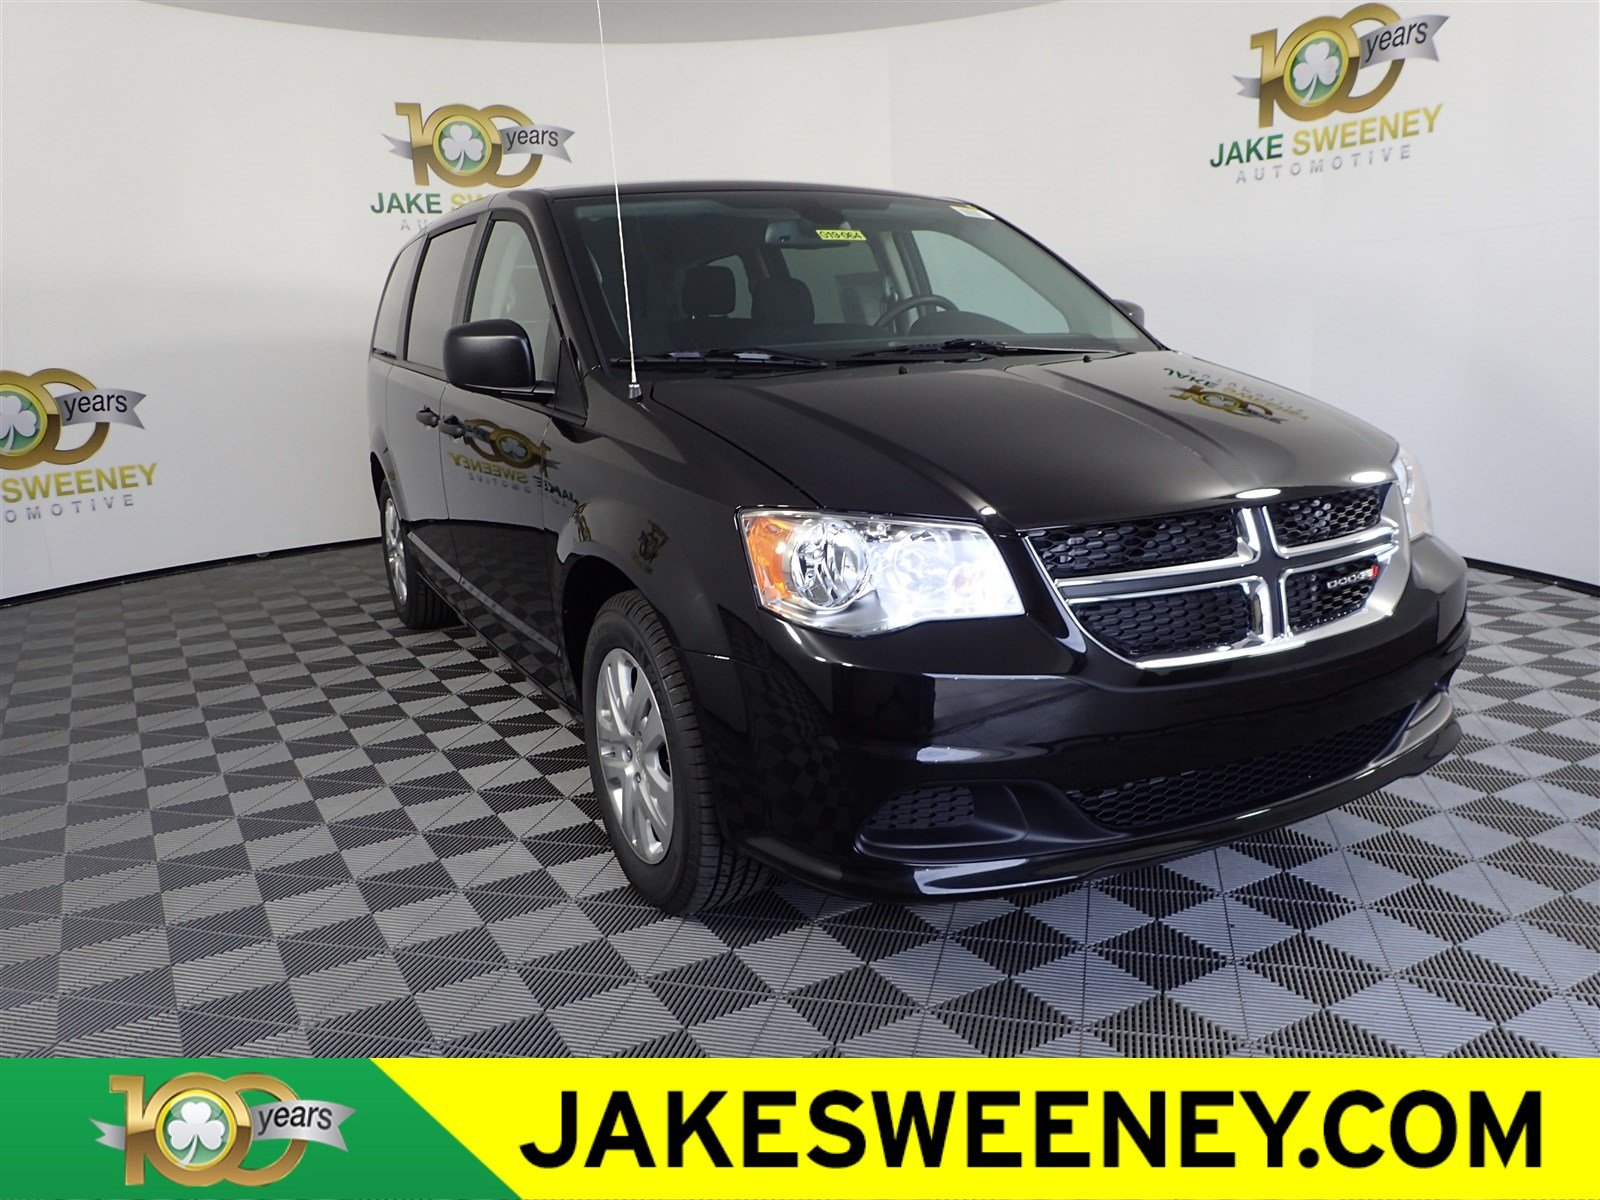 Jake Sweeney Dodge >> Jake Sweeney New And Used Cars For Sale In Cincinnati